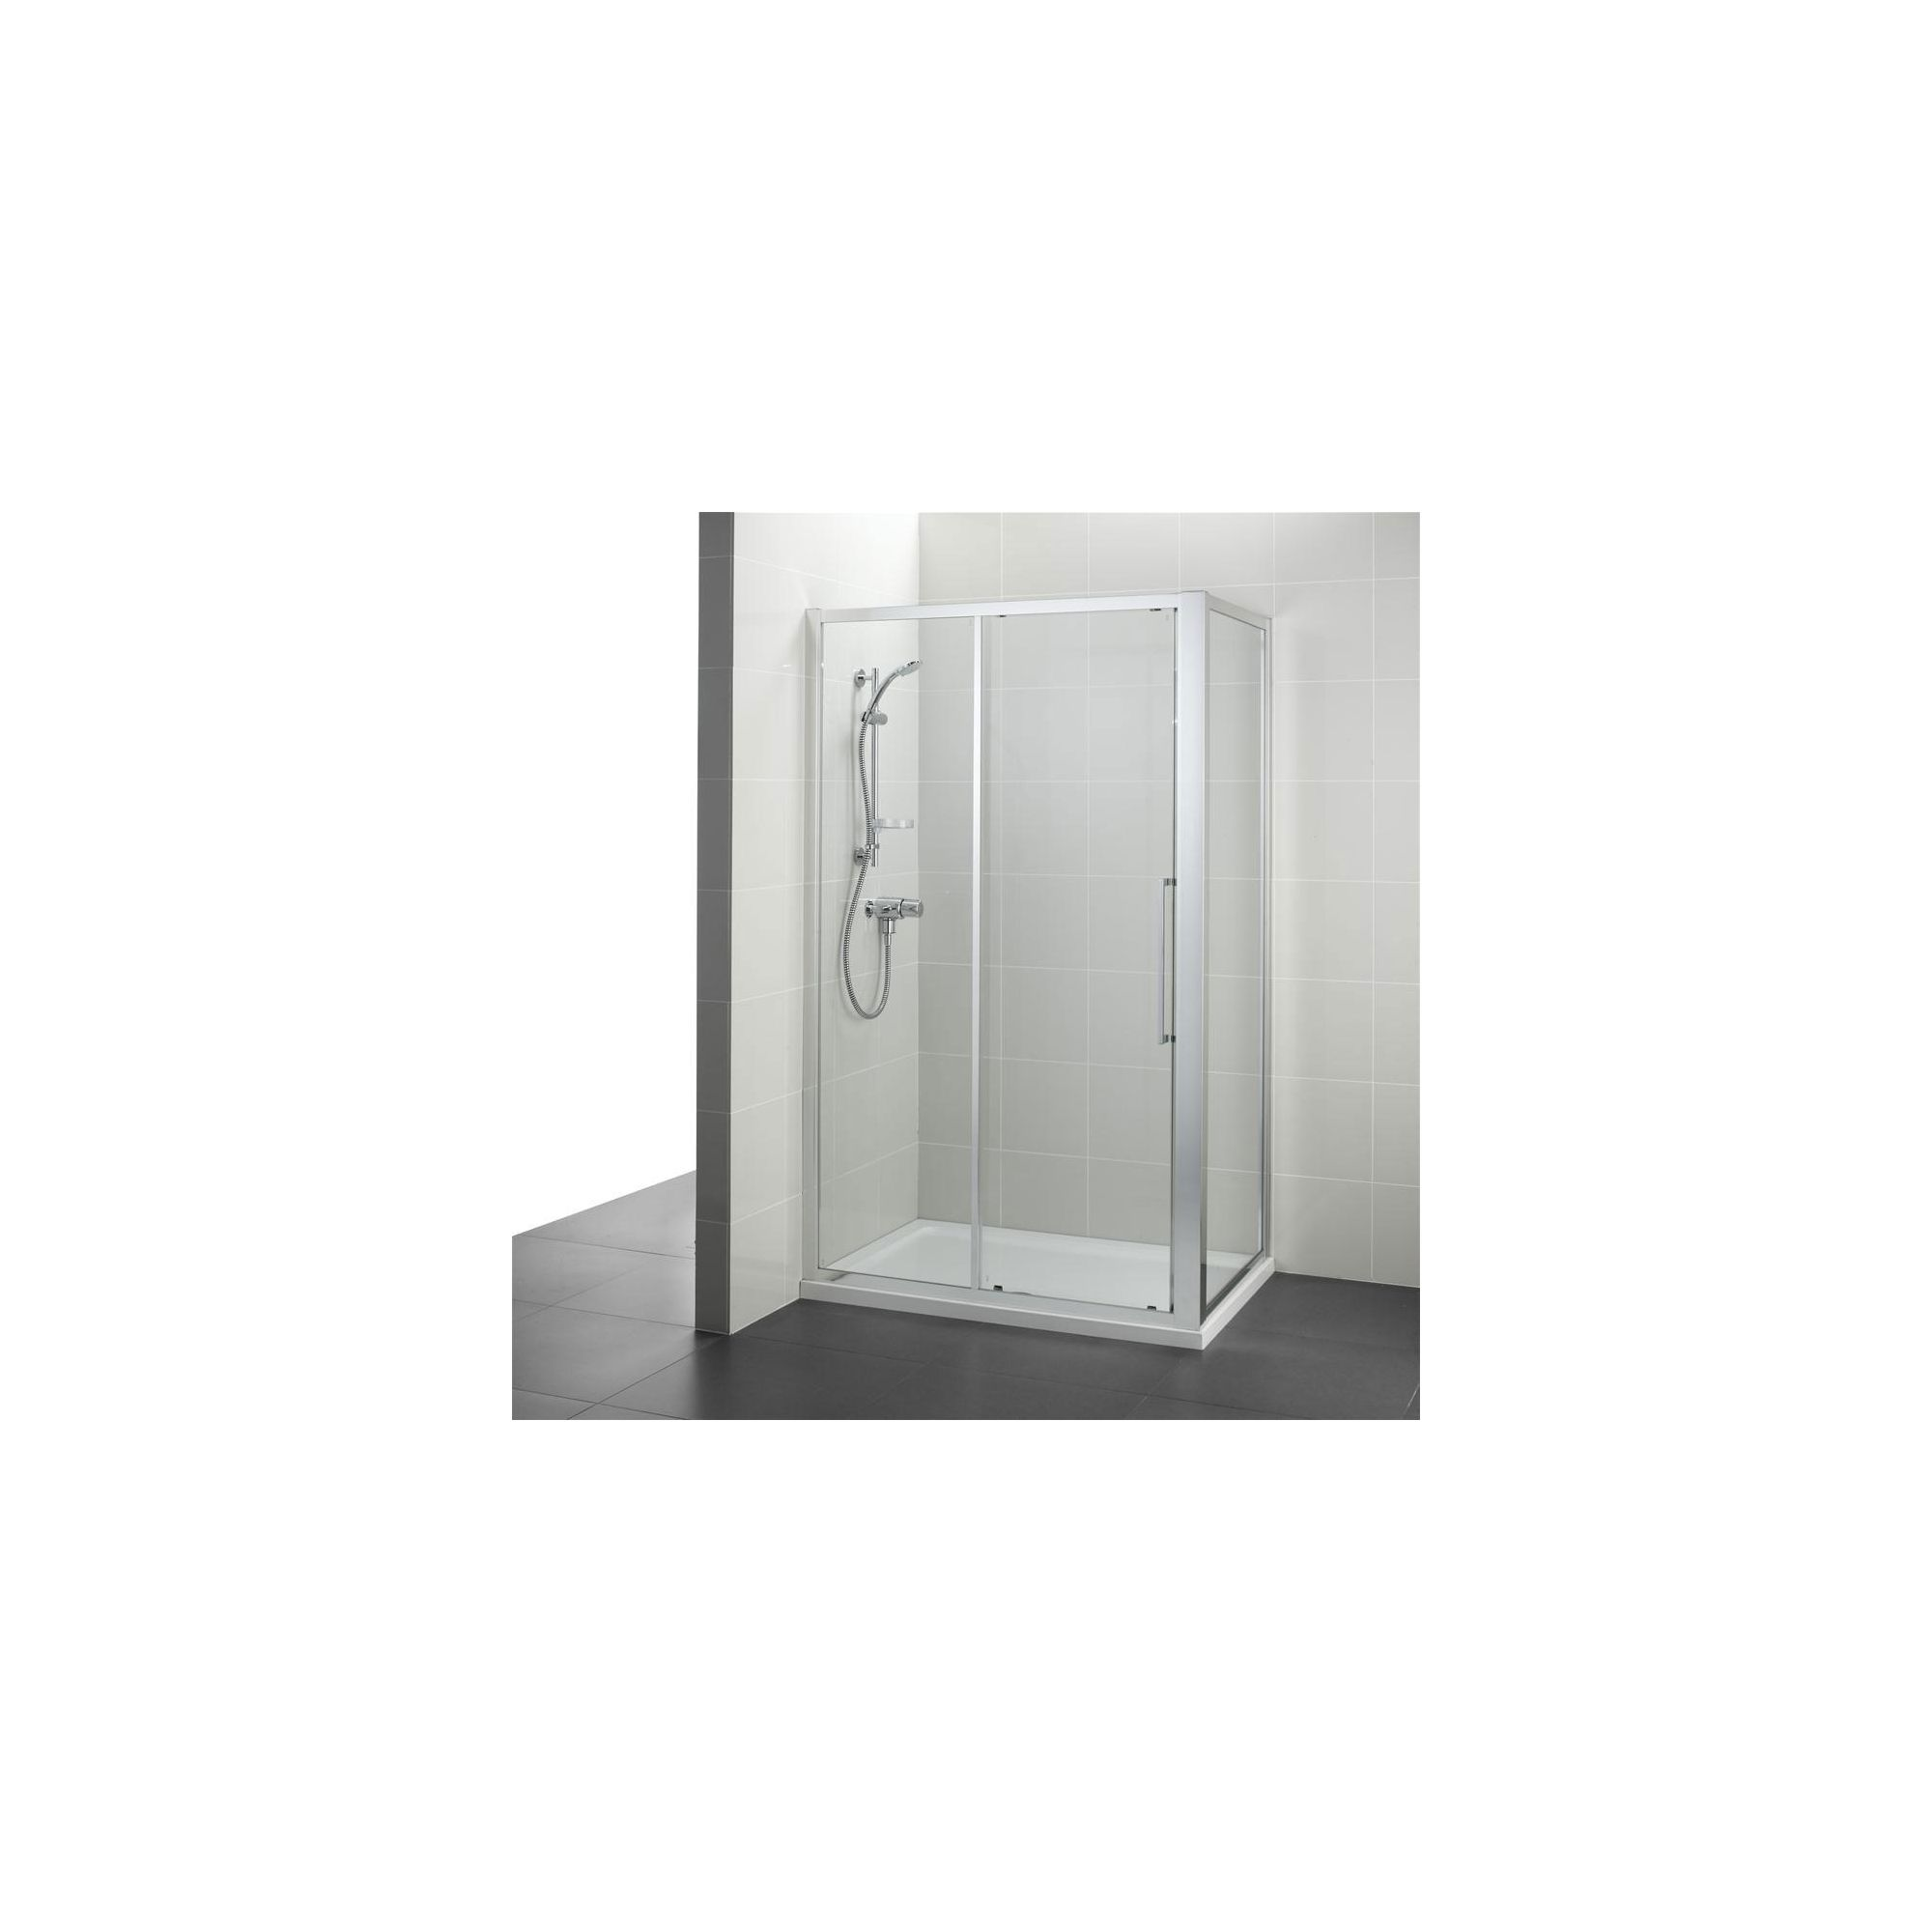 Ideal Standard Kubo Sliding Door Shower Enclosure, 1200mm x 800mm, Bright Silver Frame, Low Profile Tray at Tesco Direct